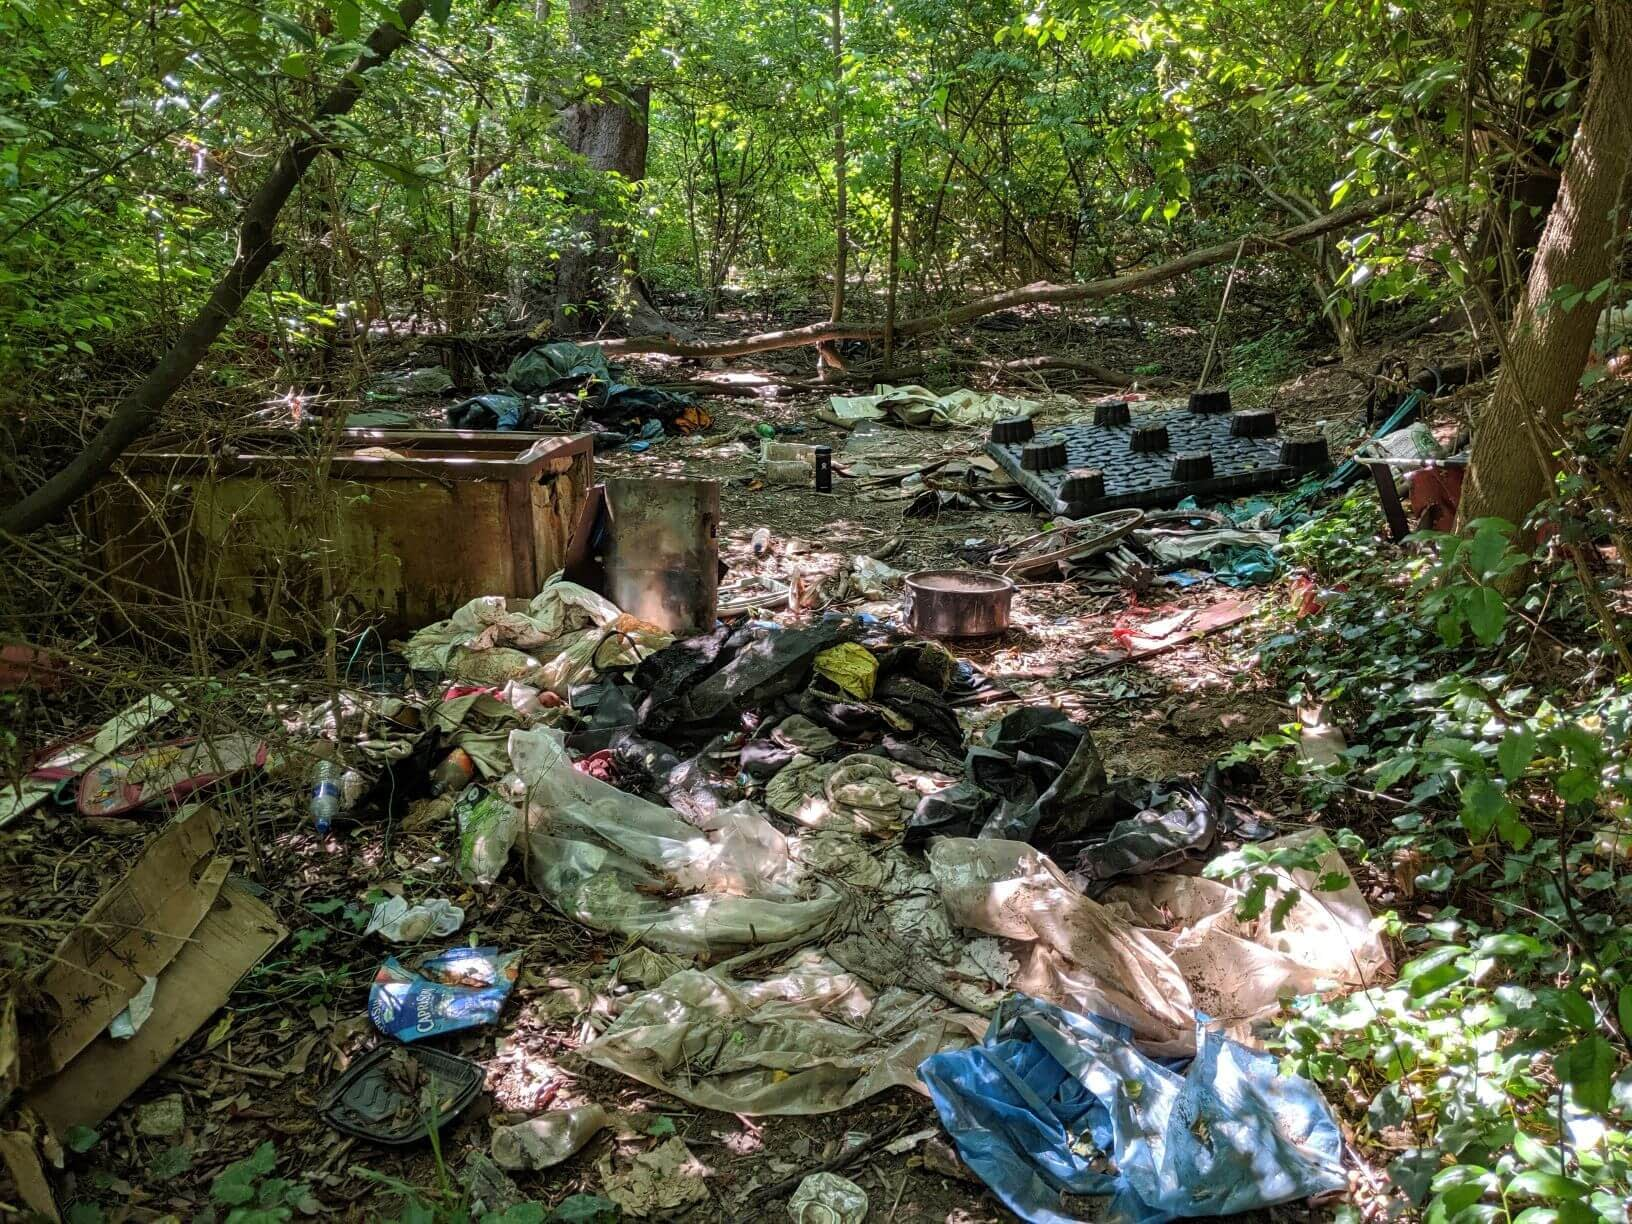 Before cleaning up a homeless camp near the atlanta beltline